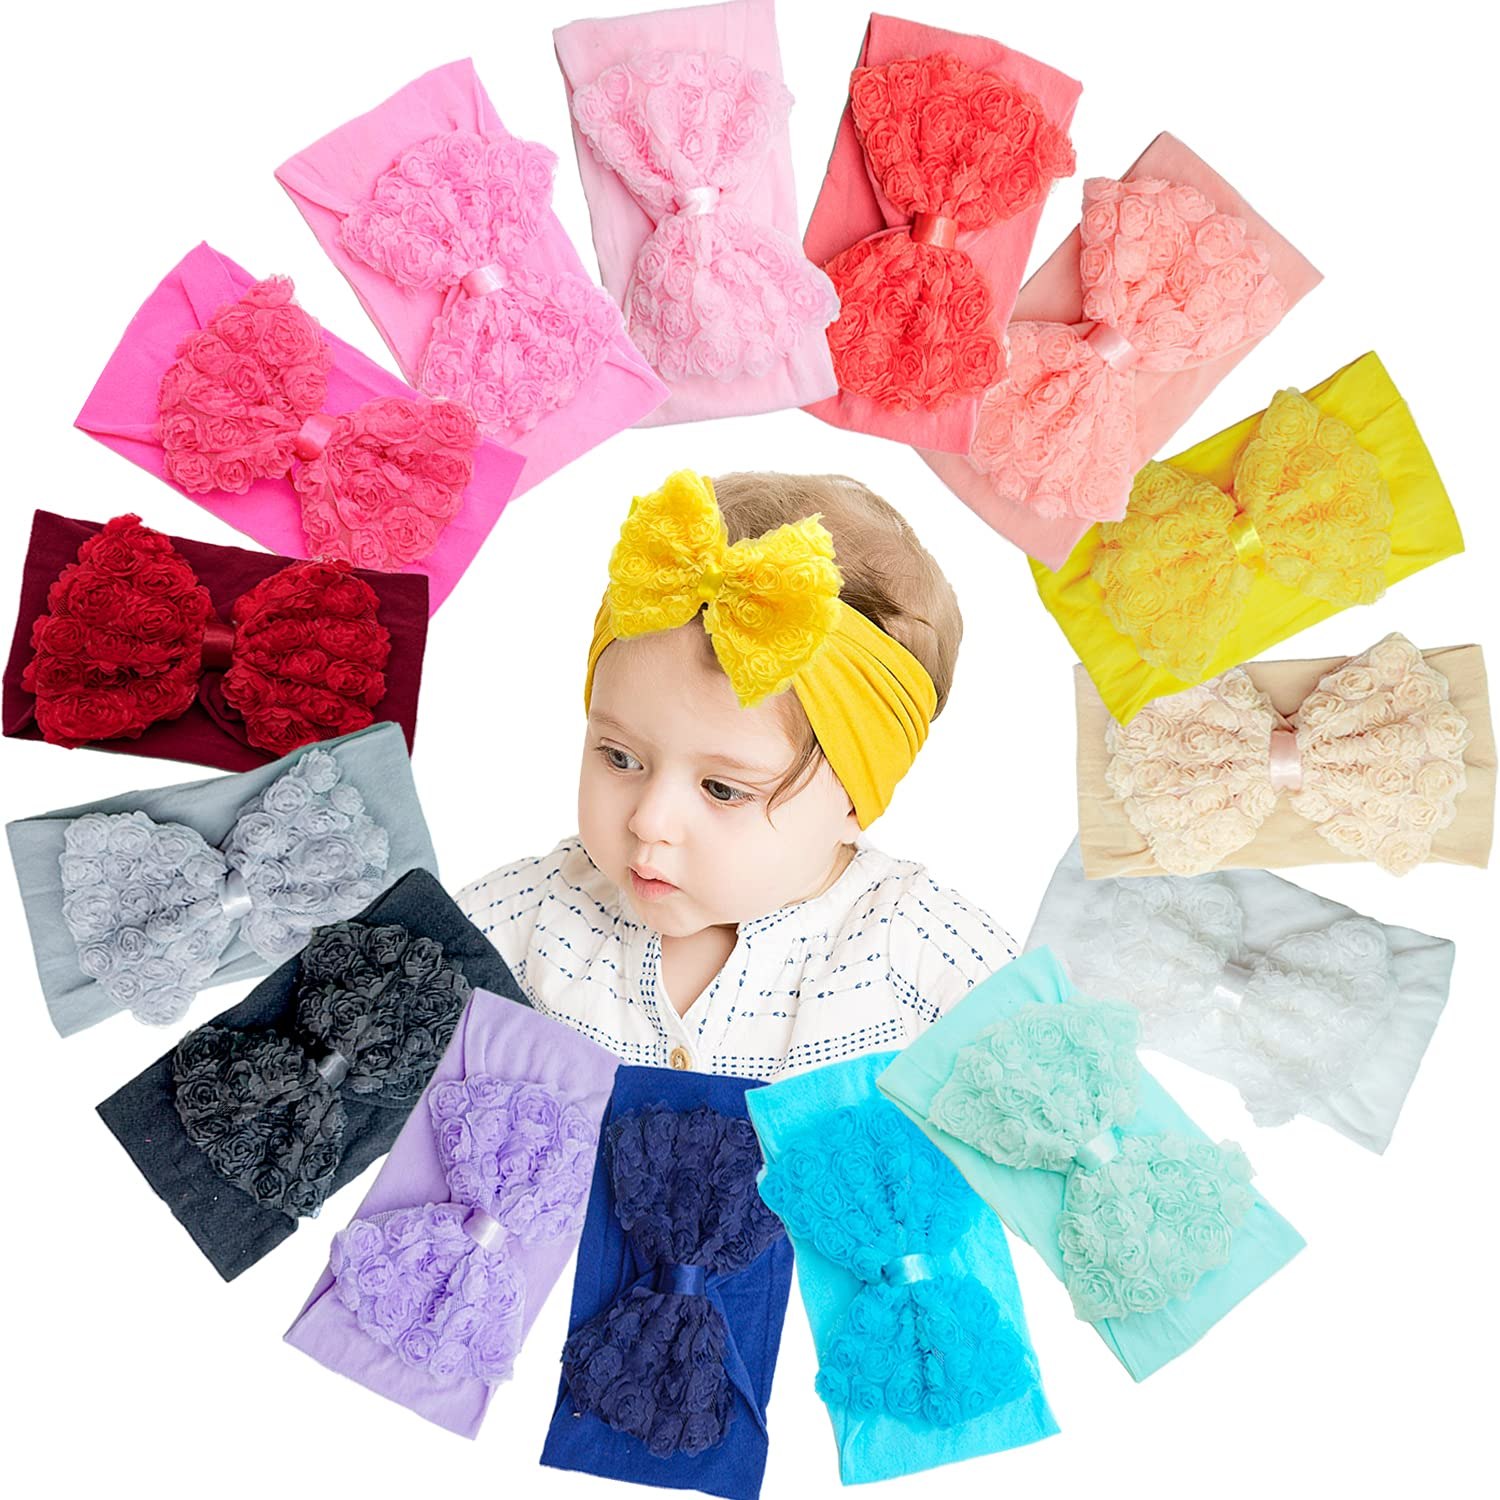 15 Pieces Baby Grils Headbands Creative Hair Bows Soft Stretchy Hair Band Headbands for Baby Girls Newborns Infants Toddlers